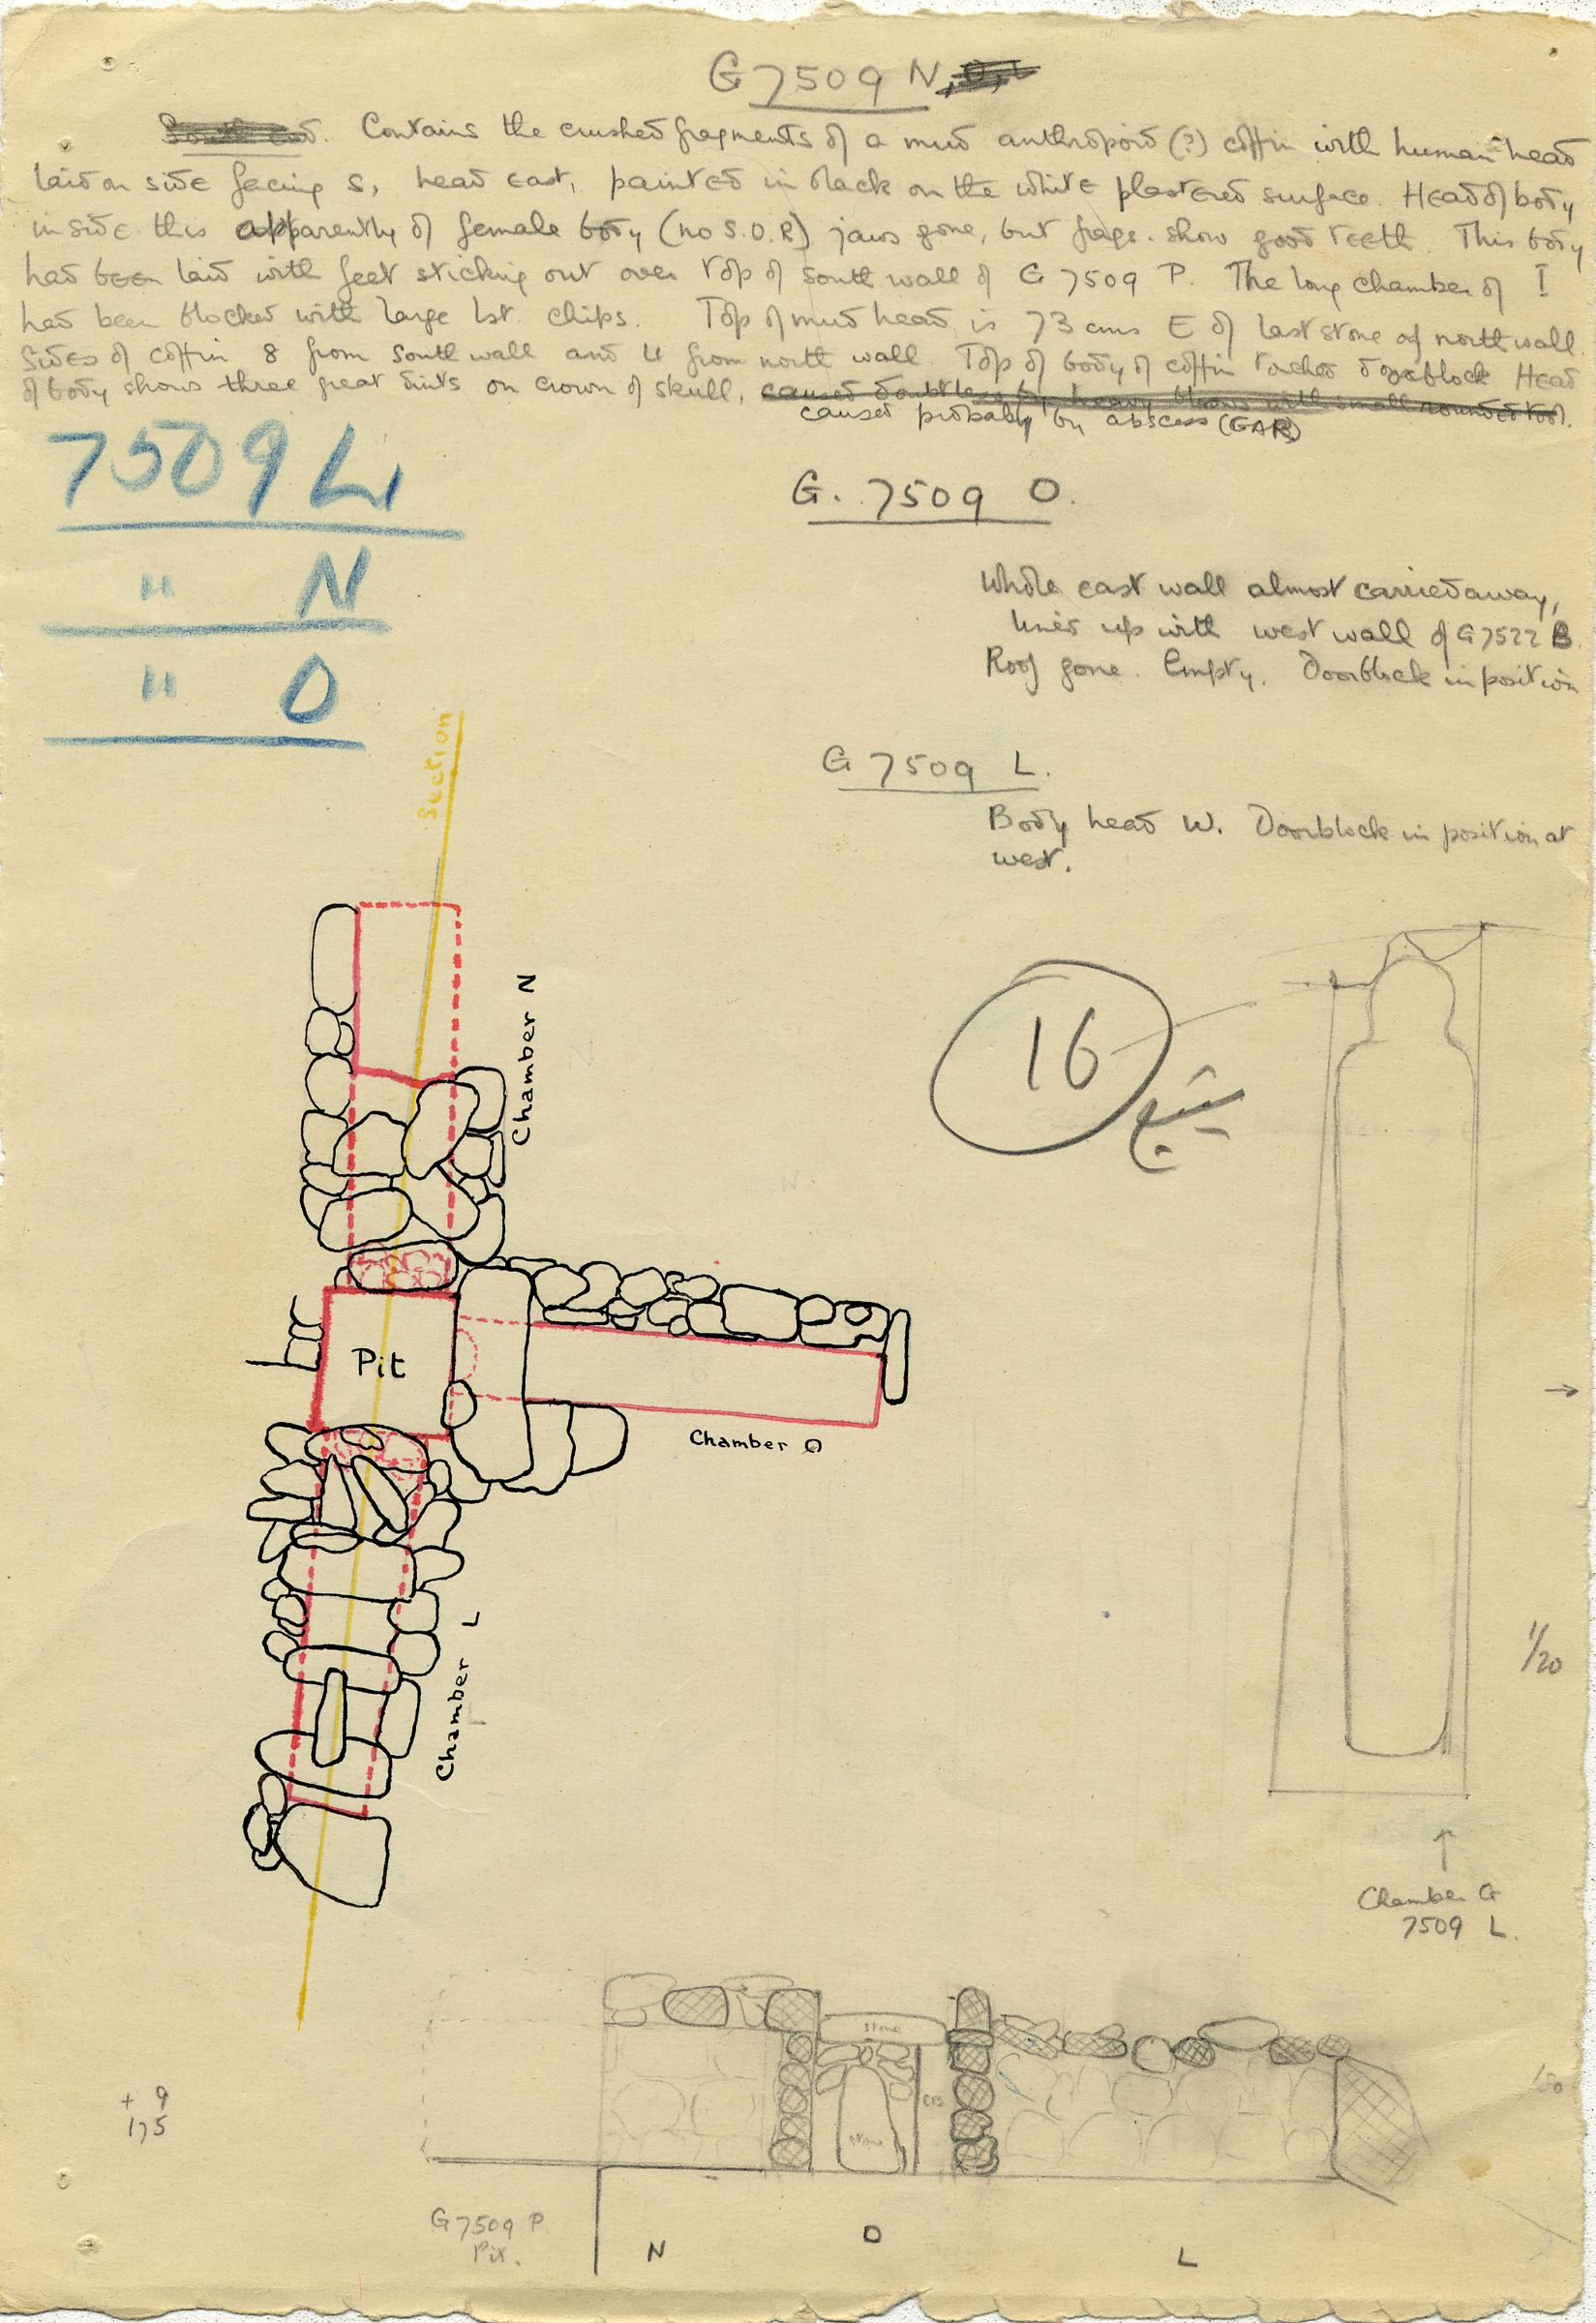 Maps and plans: G 7509, Shaft L, N, O